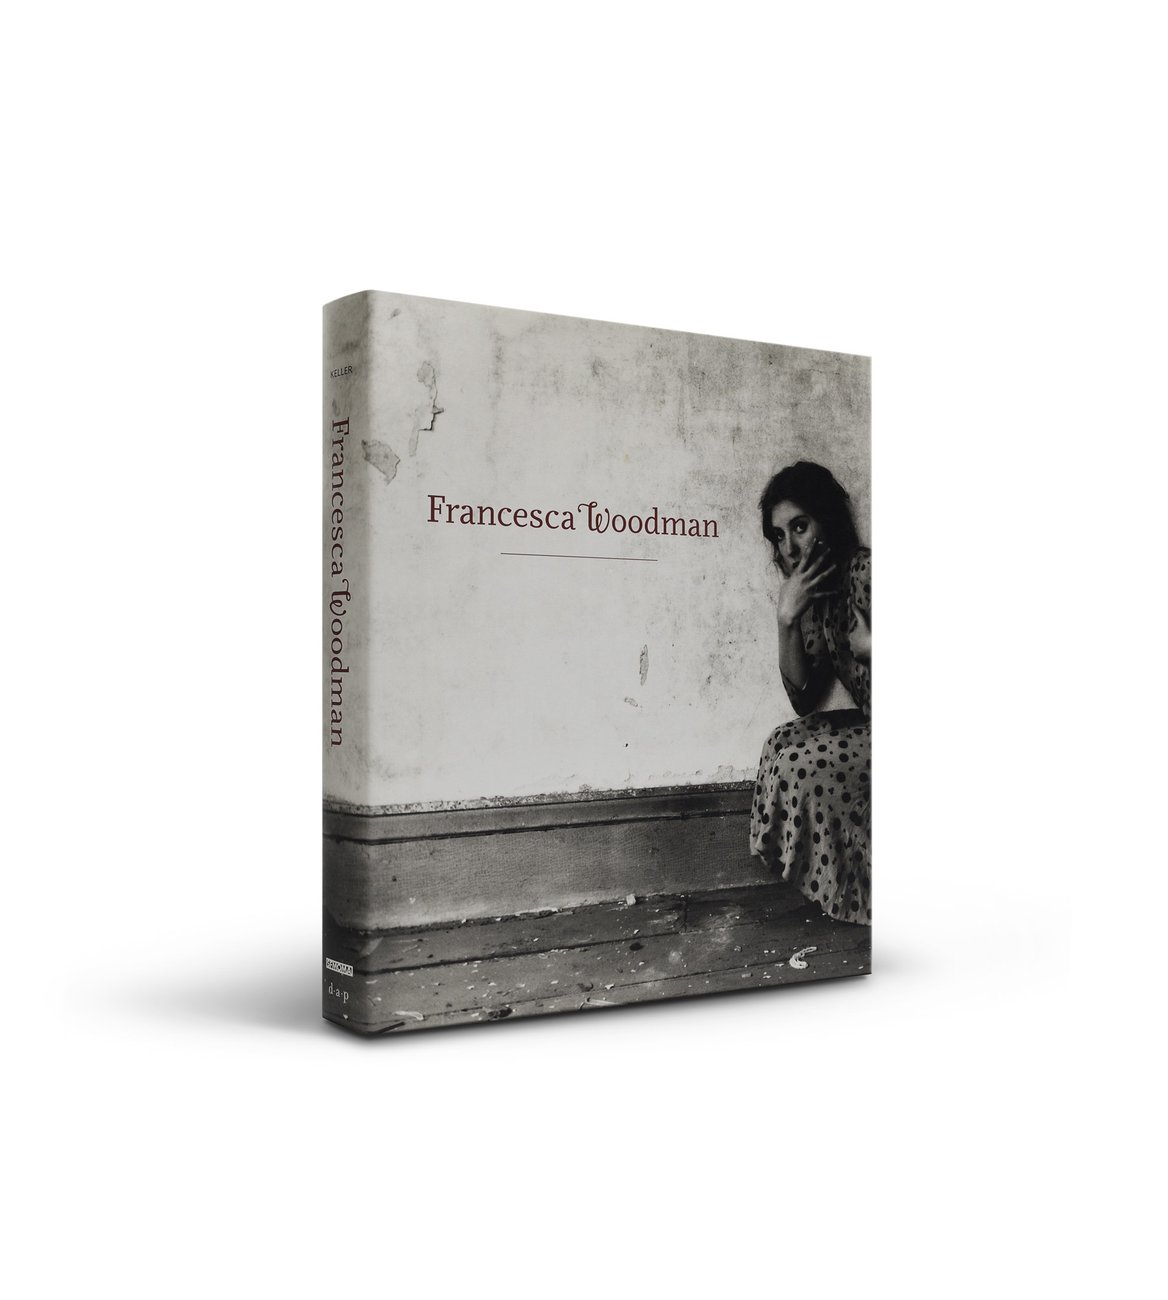 Francesca Woodman publication cover